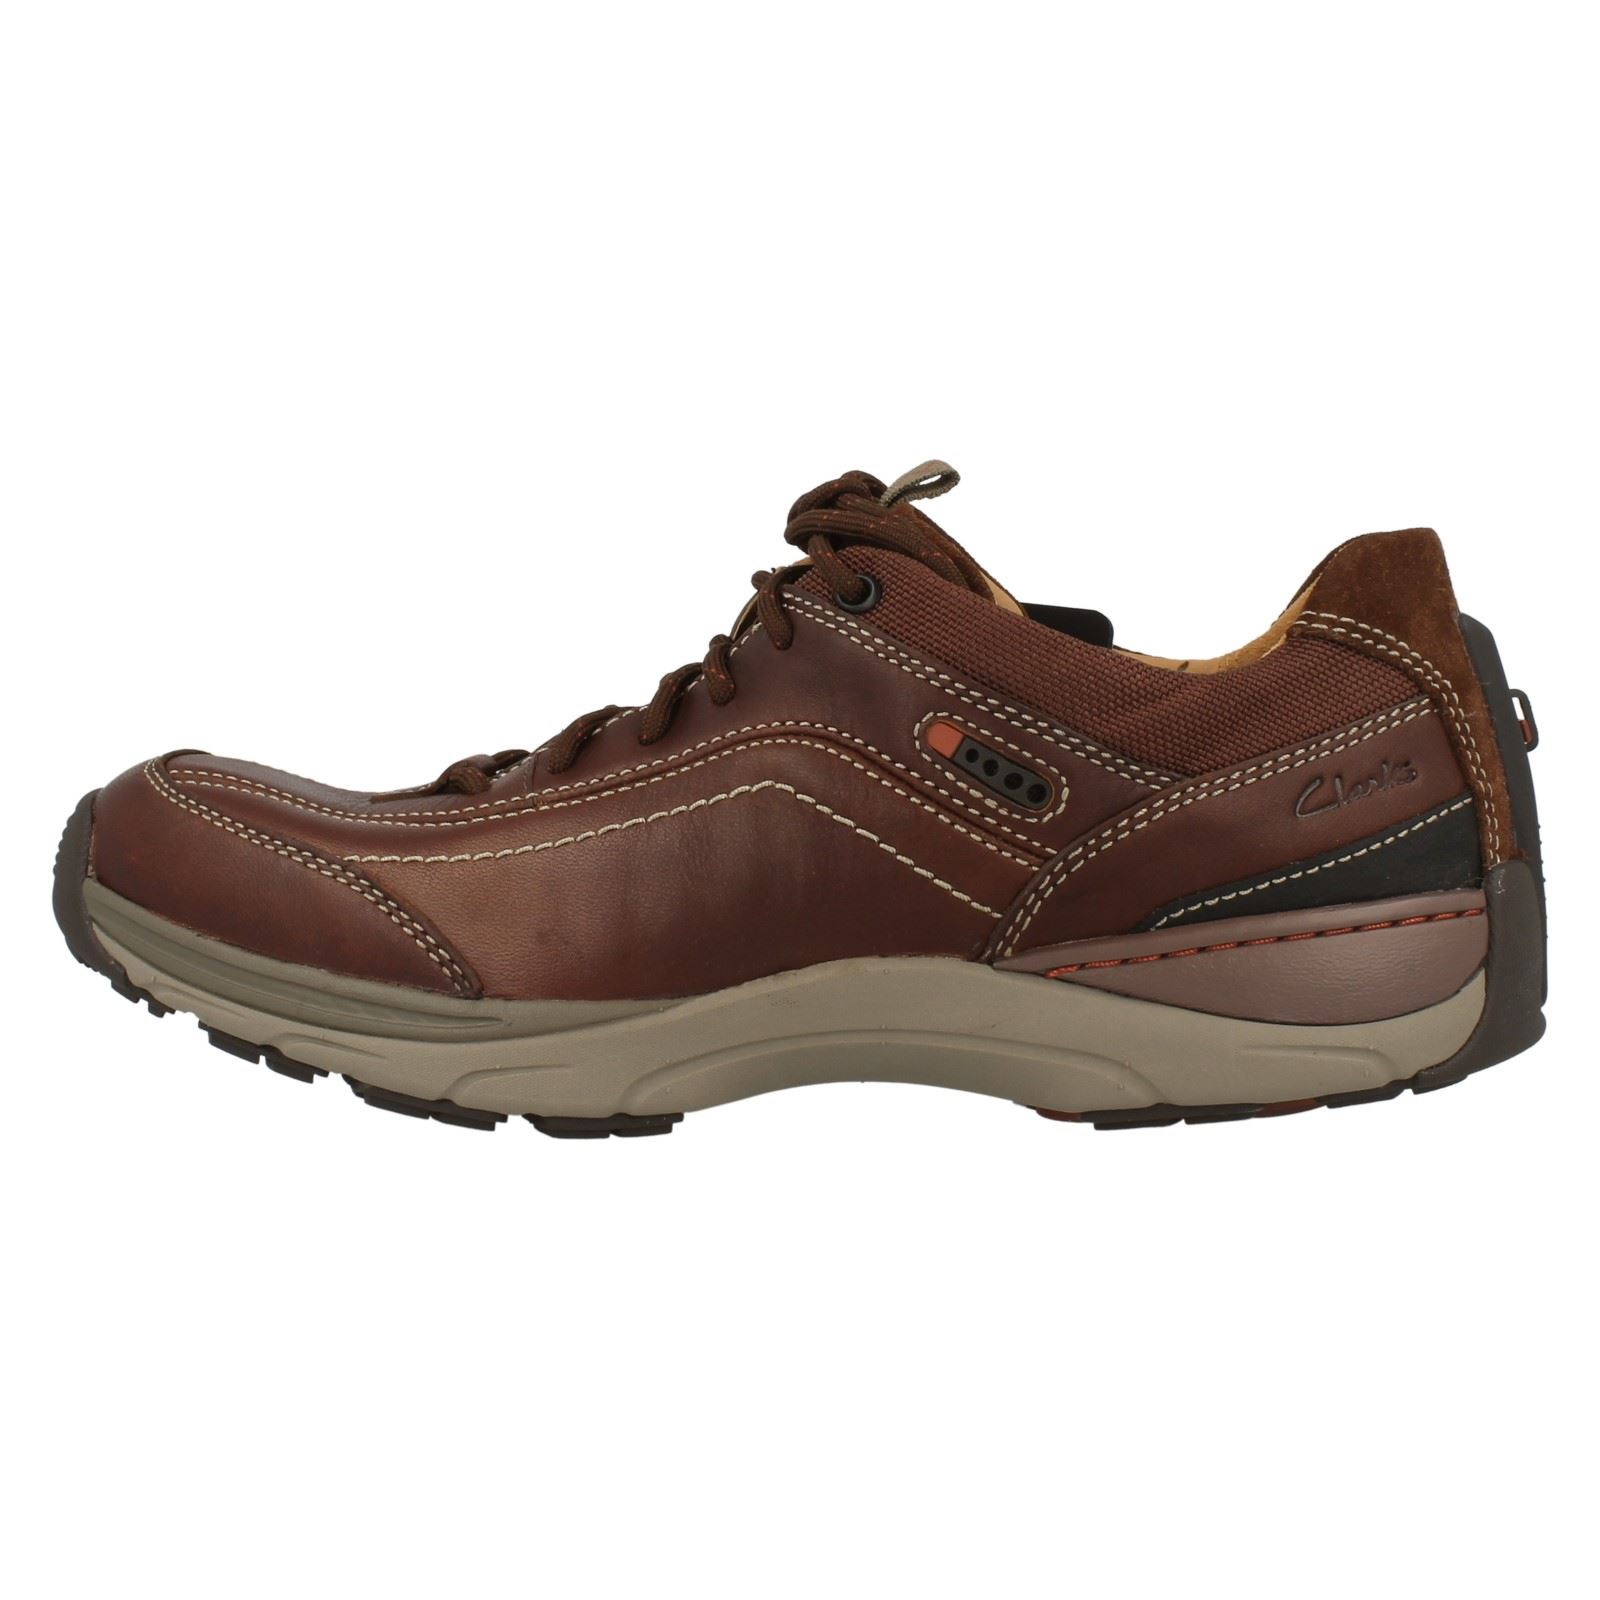 Clarks Active Air Boat Shoes